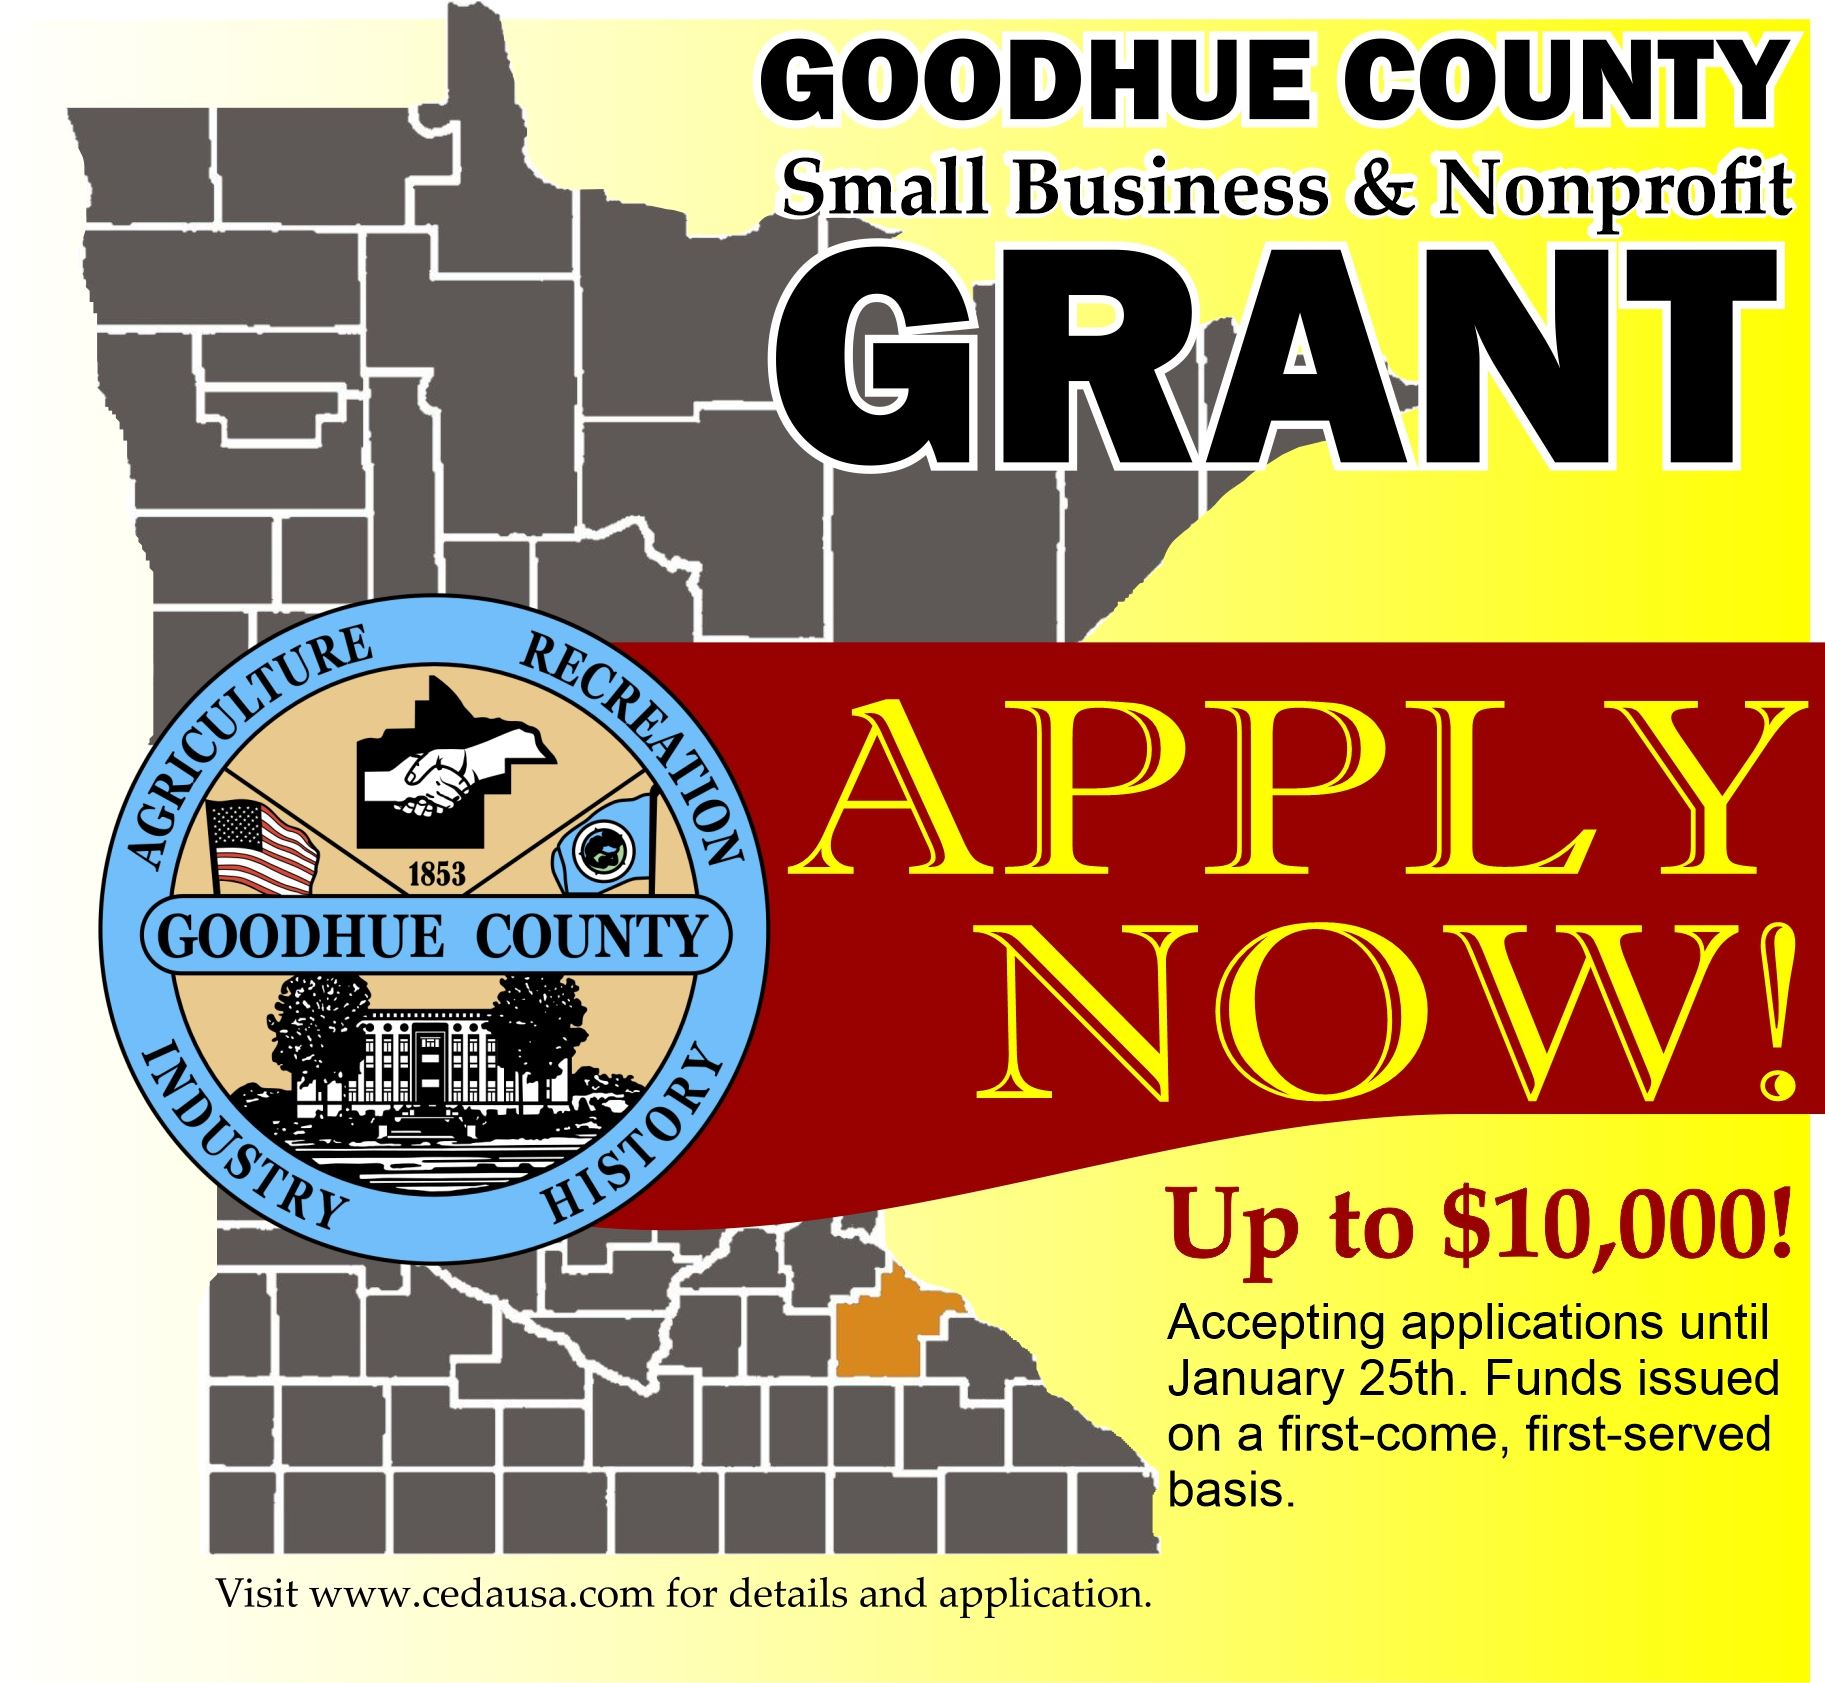 Goodhue County Business and Nonprofit Relief Grant Opens in new window